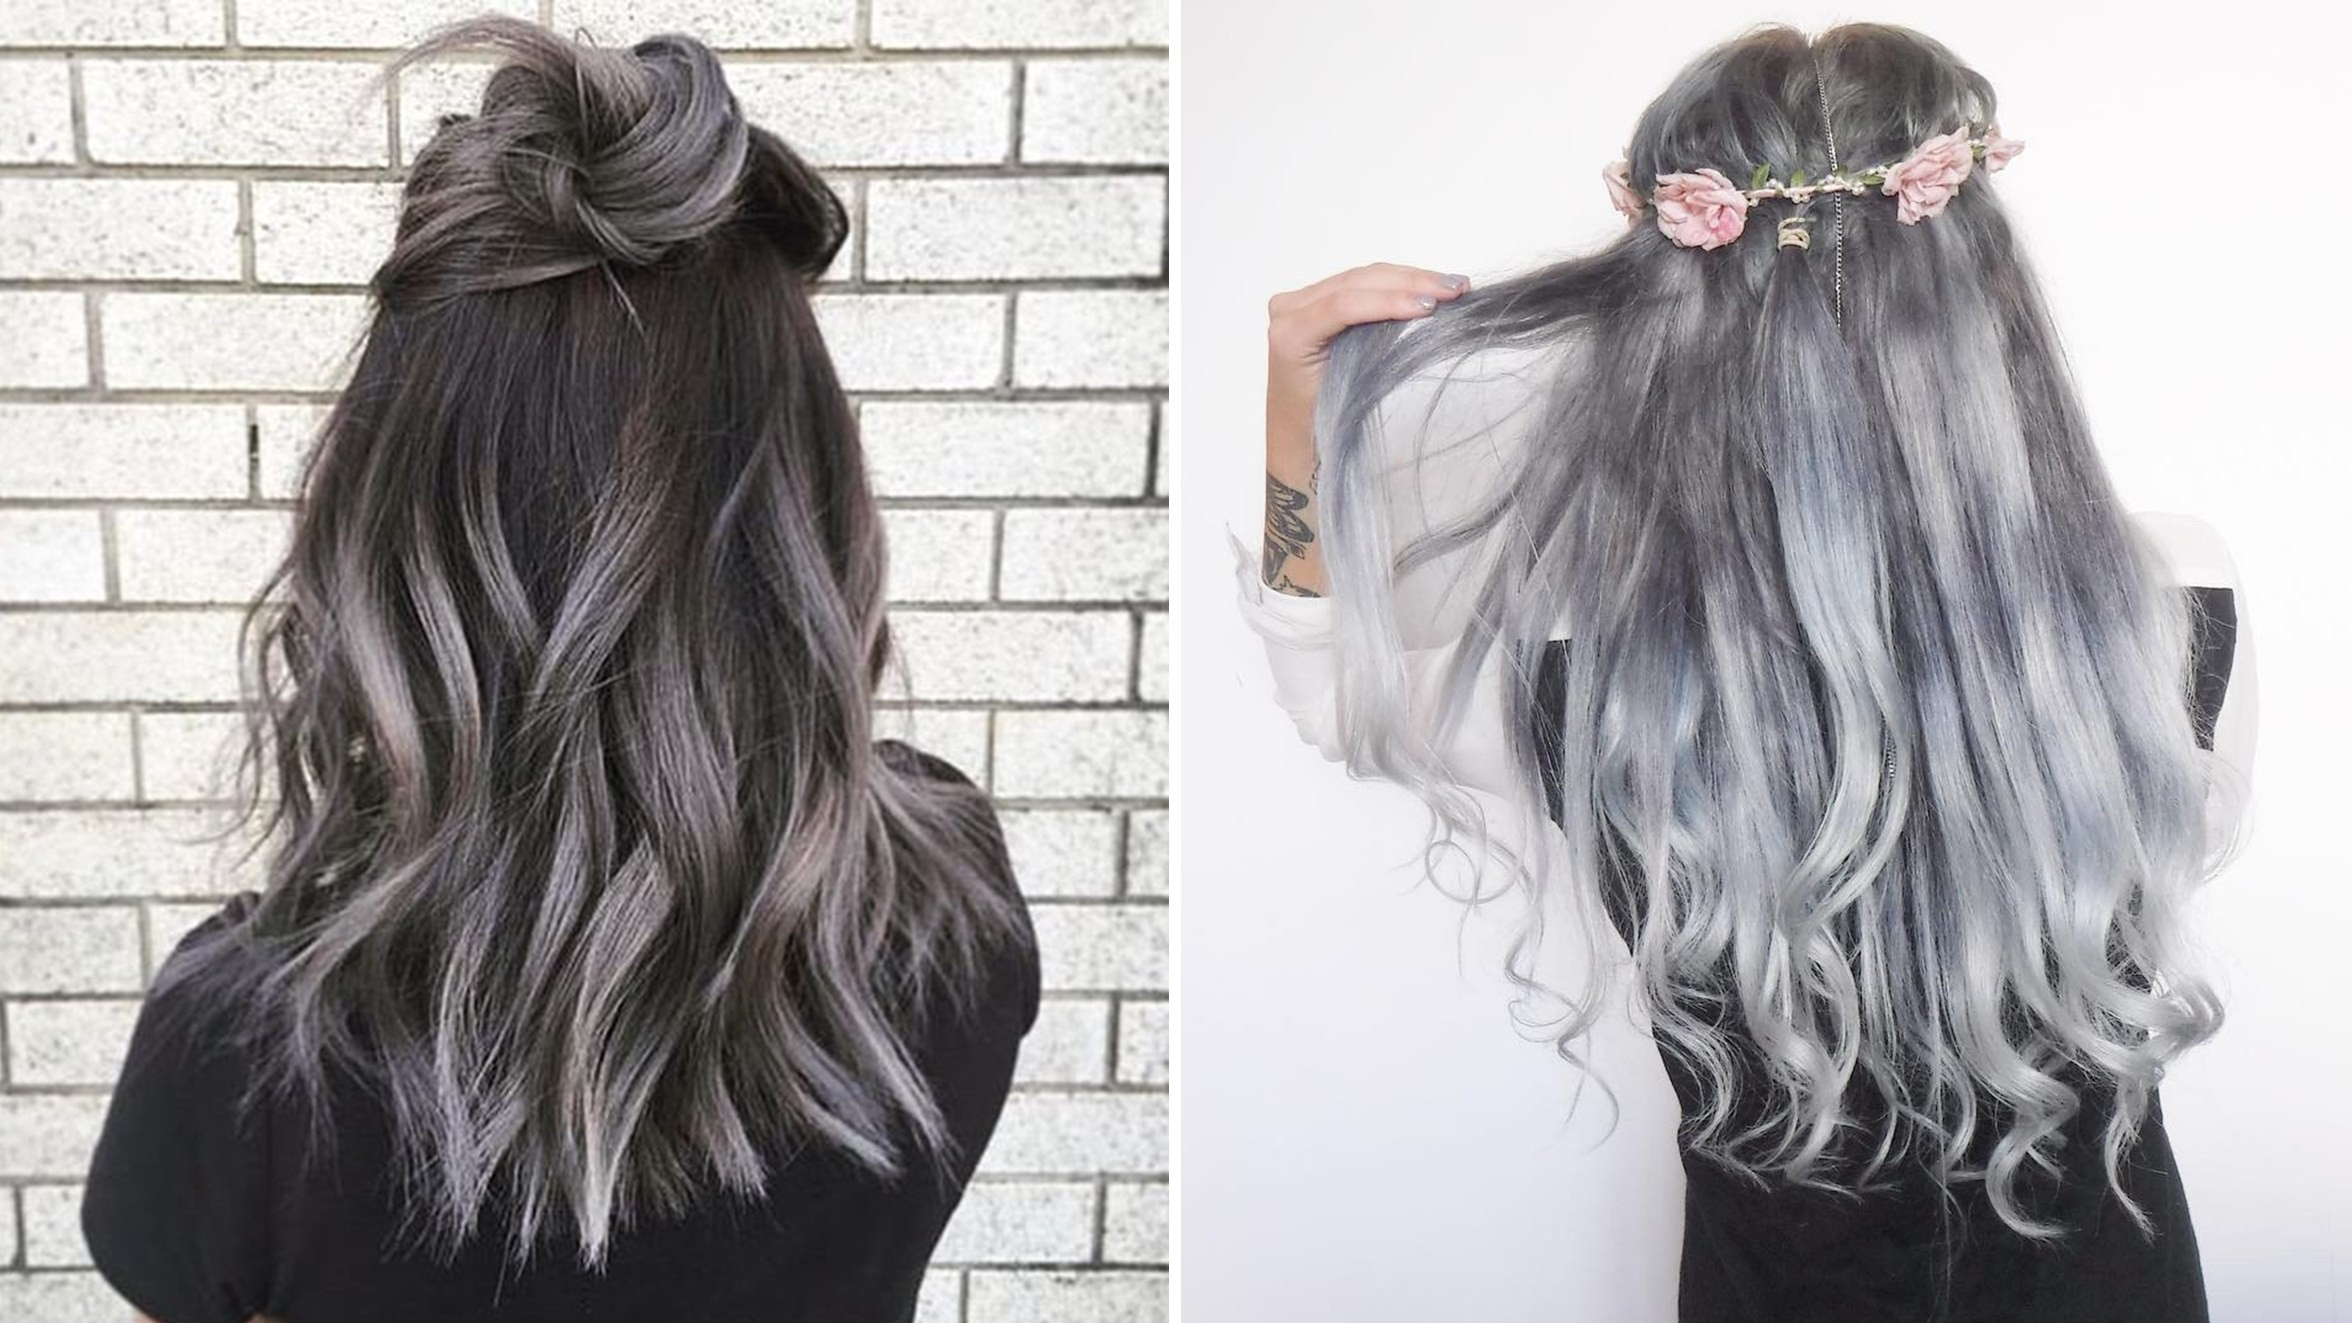 2352x1323 The Gray Hair Trend: 32 Instagram-Worthy Gray Ombré Hairstyles